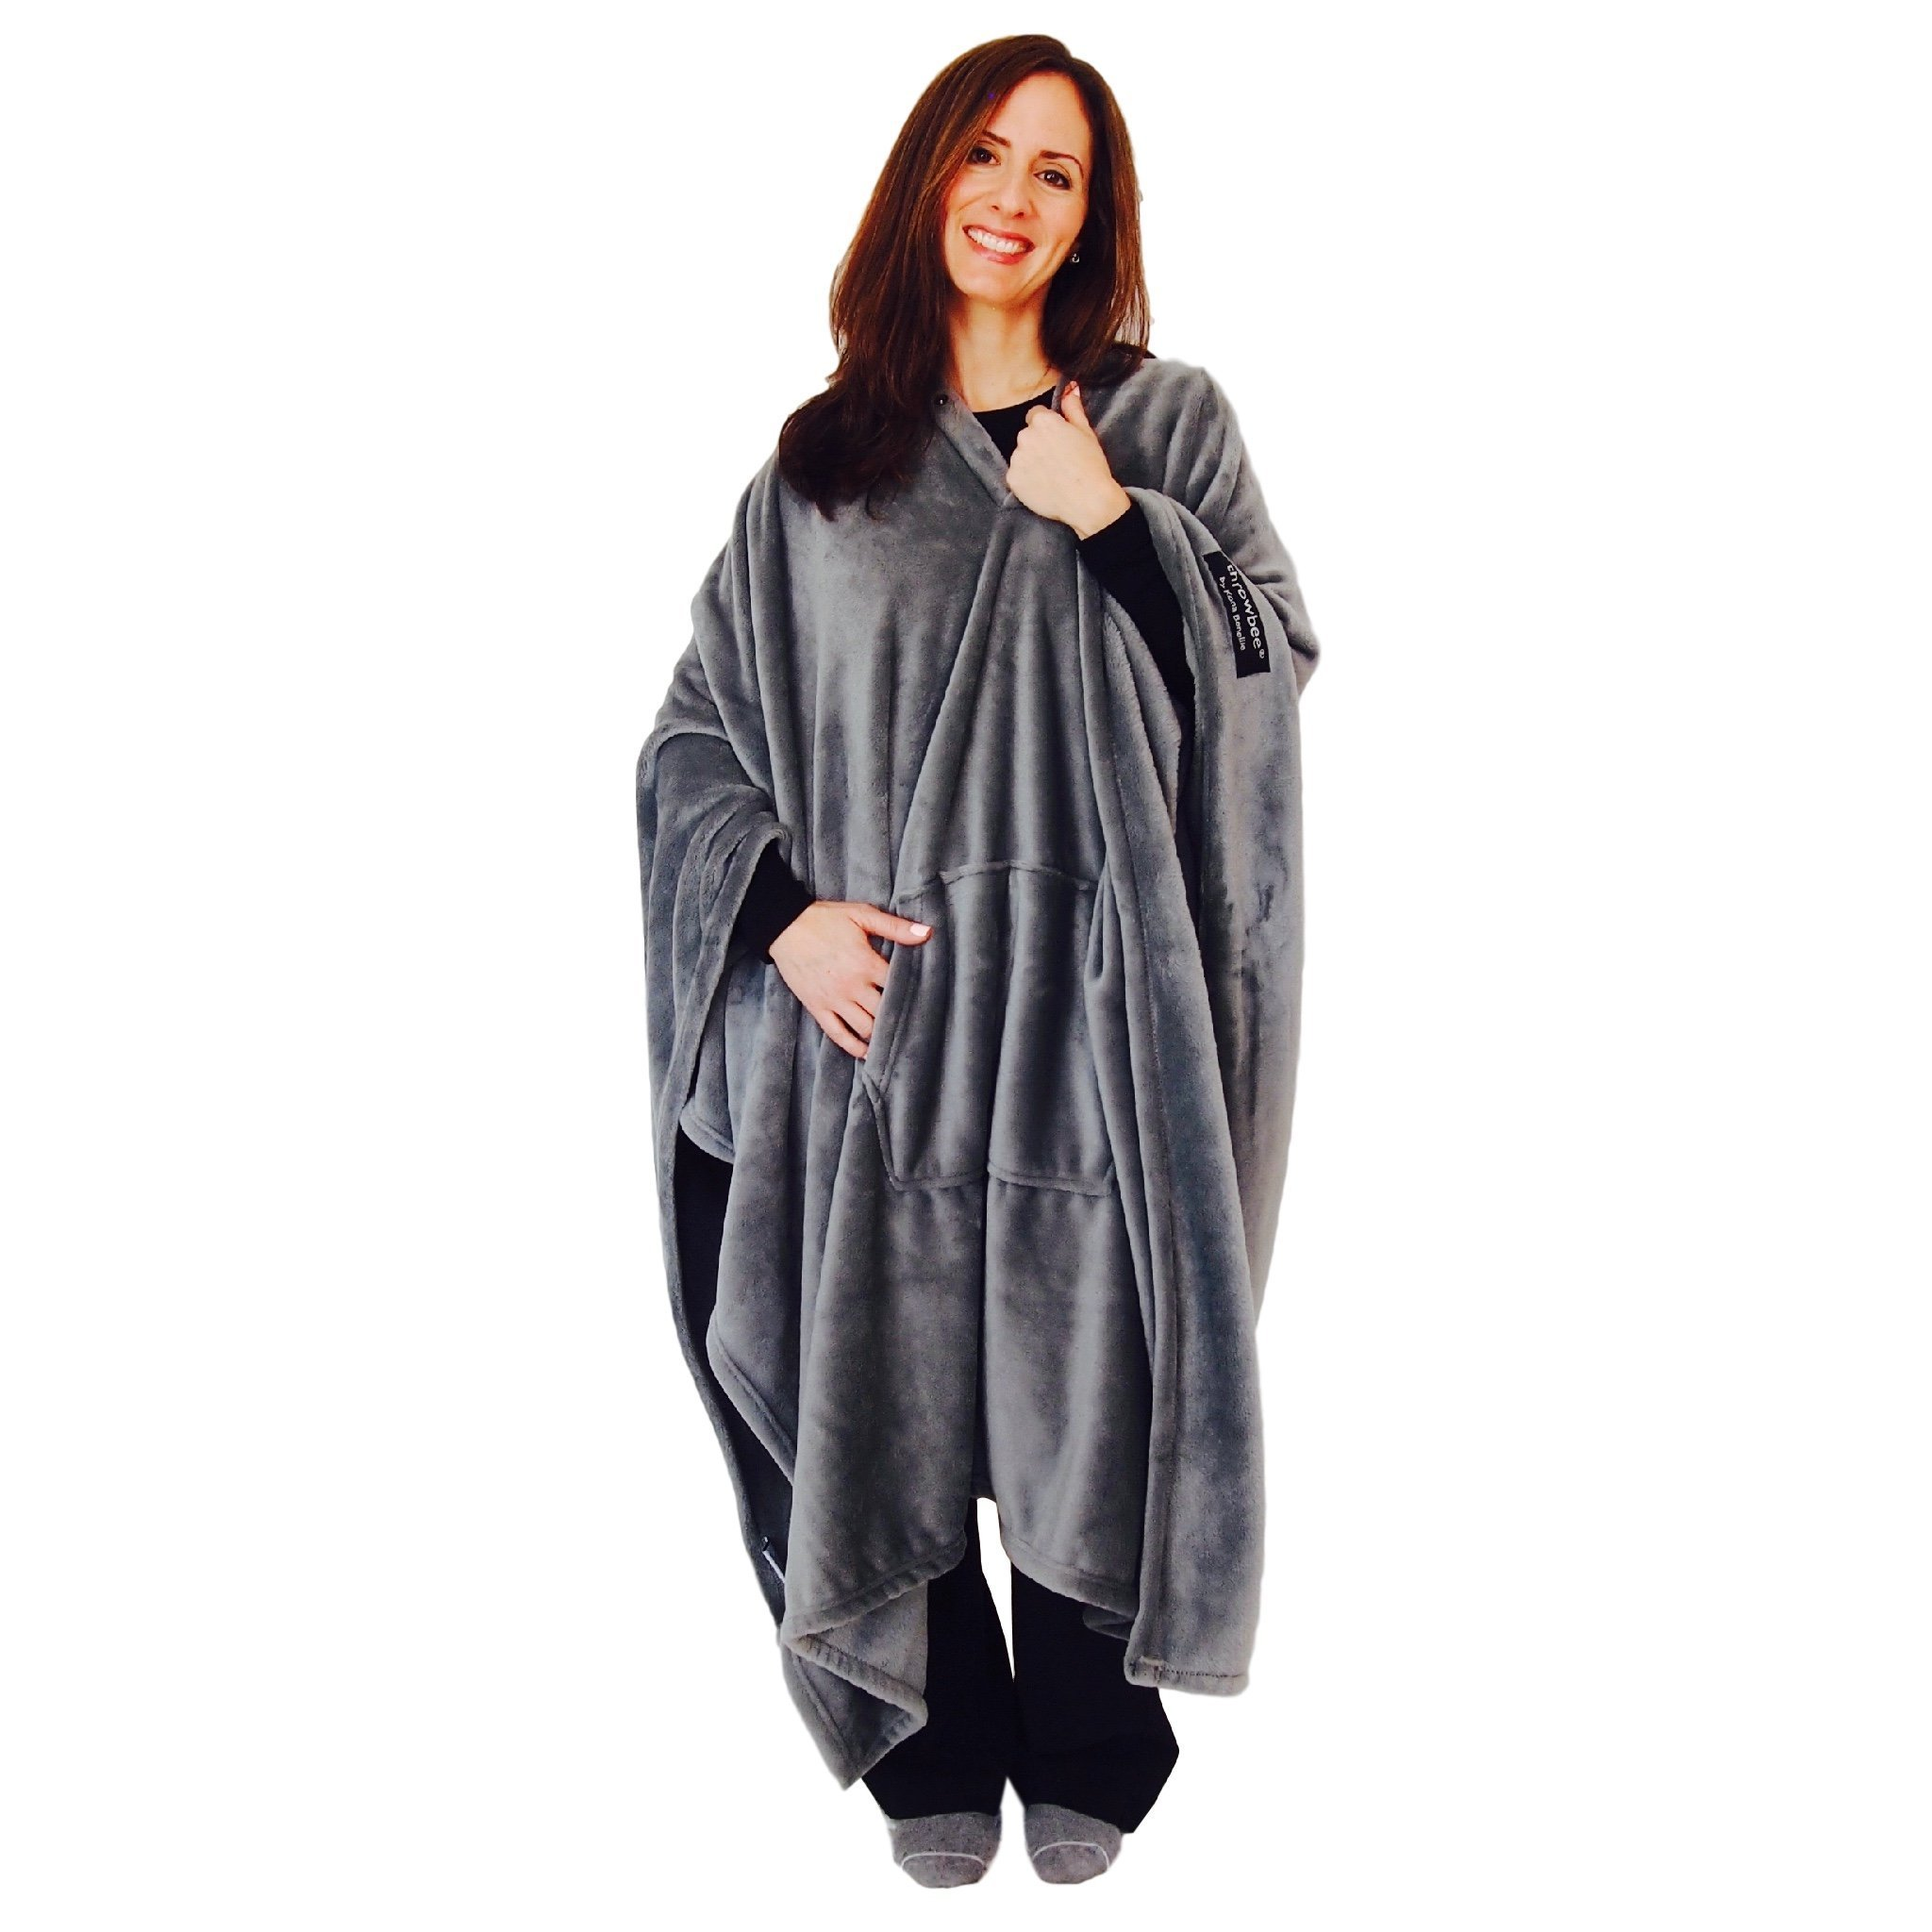 throwbee Original Blanket-Poncho Gray Grey (Yay! NO Sleeves) Best Wearable Blanket on The Planet Soft Throw Indoors or Outdoors - Adults Men Women Kids by throwbee